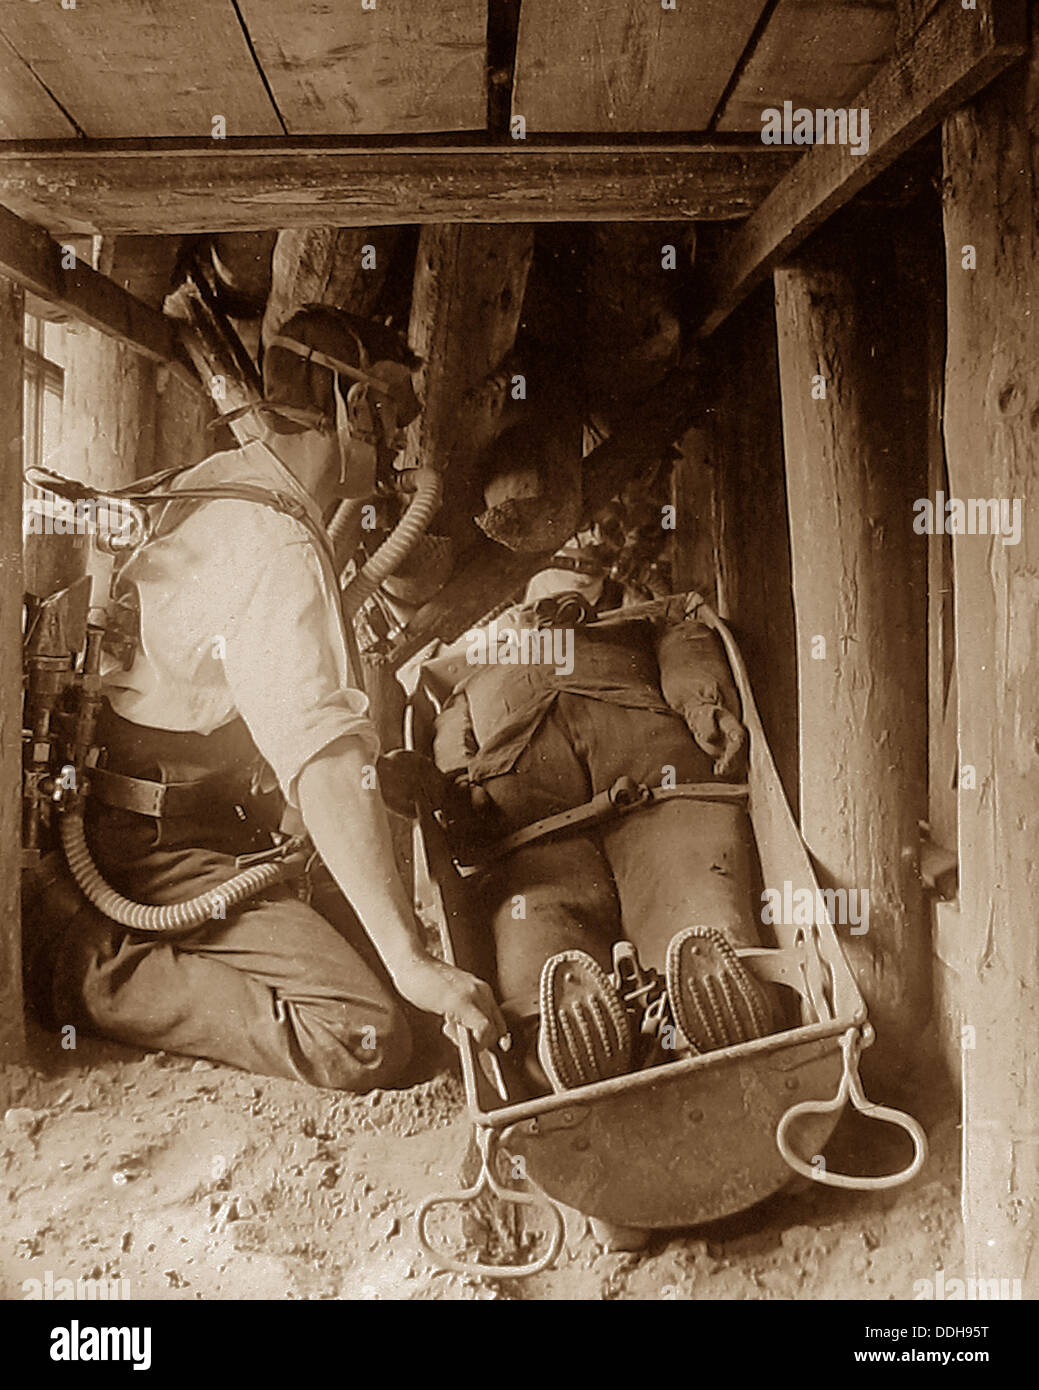 Coal Mining rescue training early 1900s - Stock Image